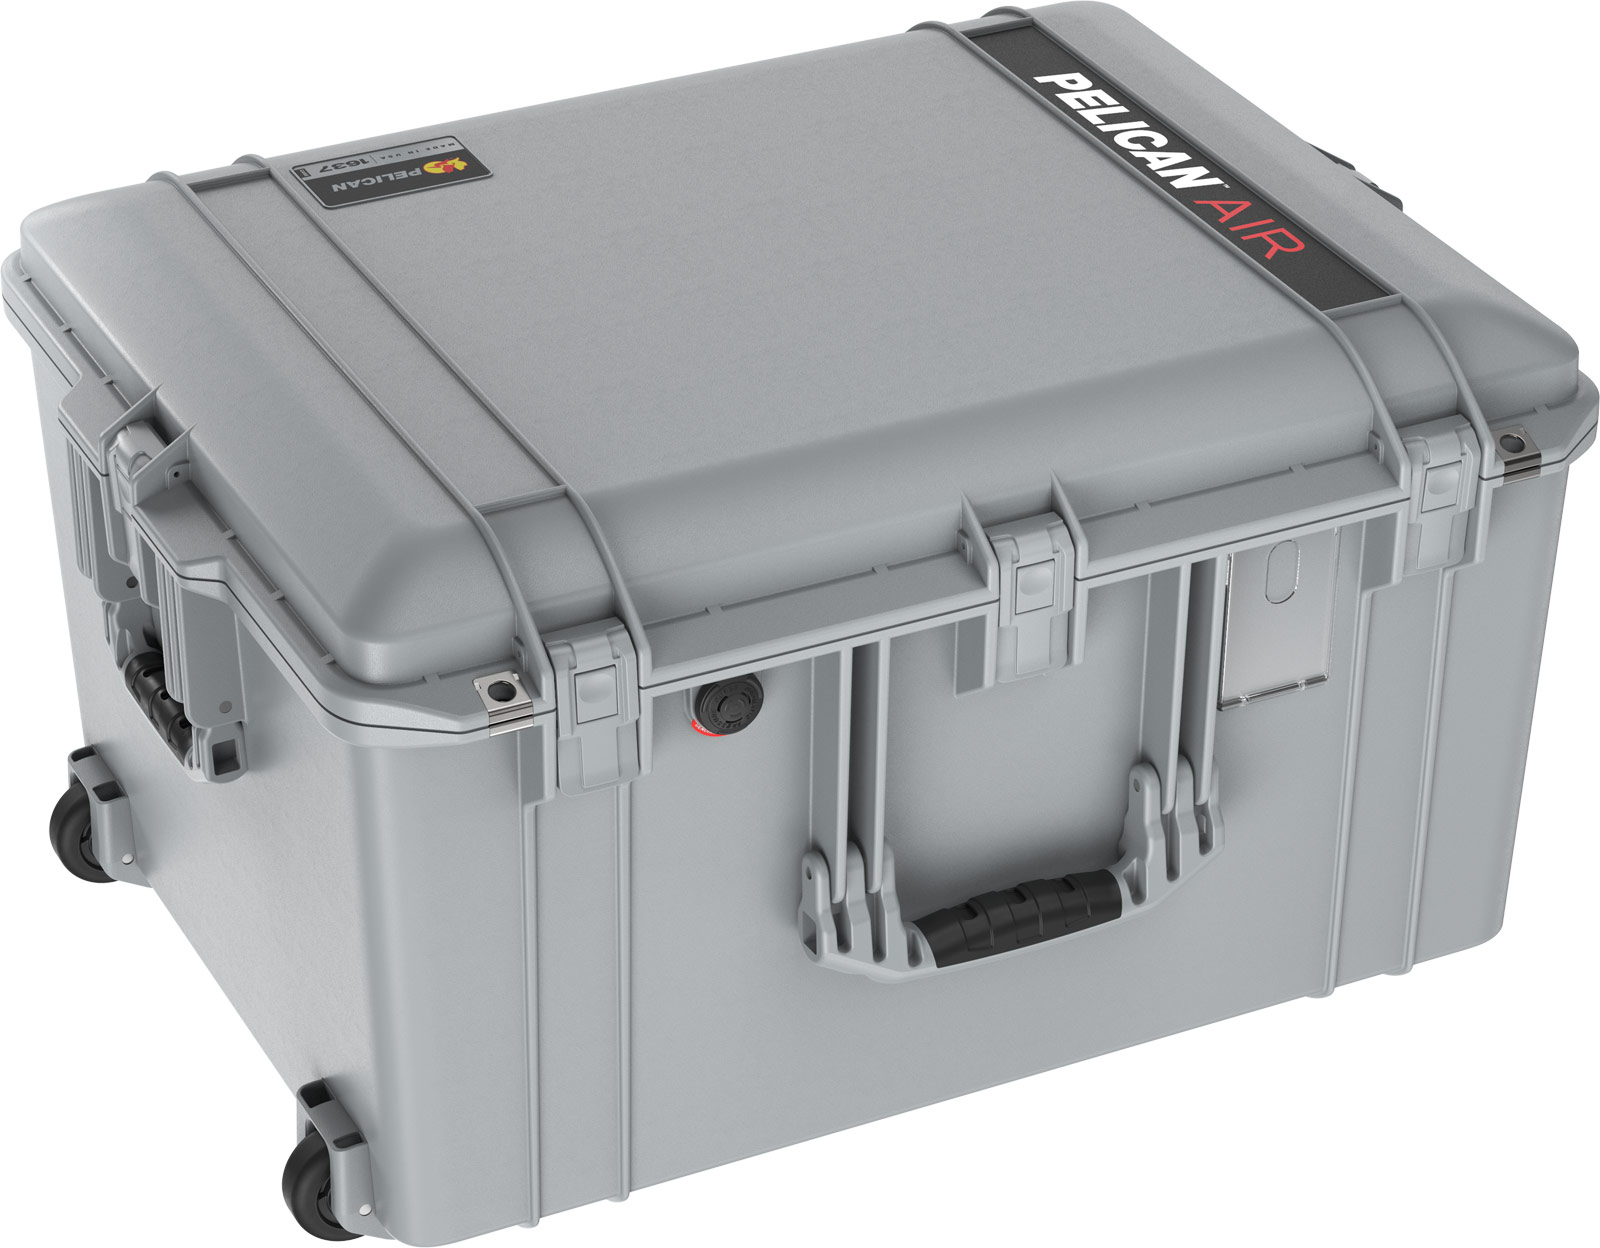 pelican 1637 air cases lightweight case